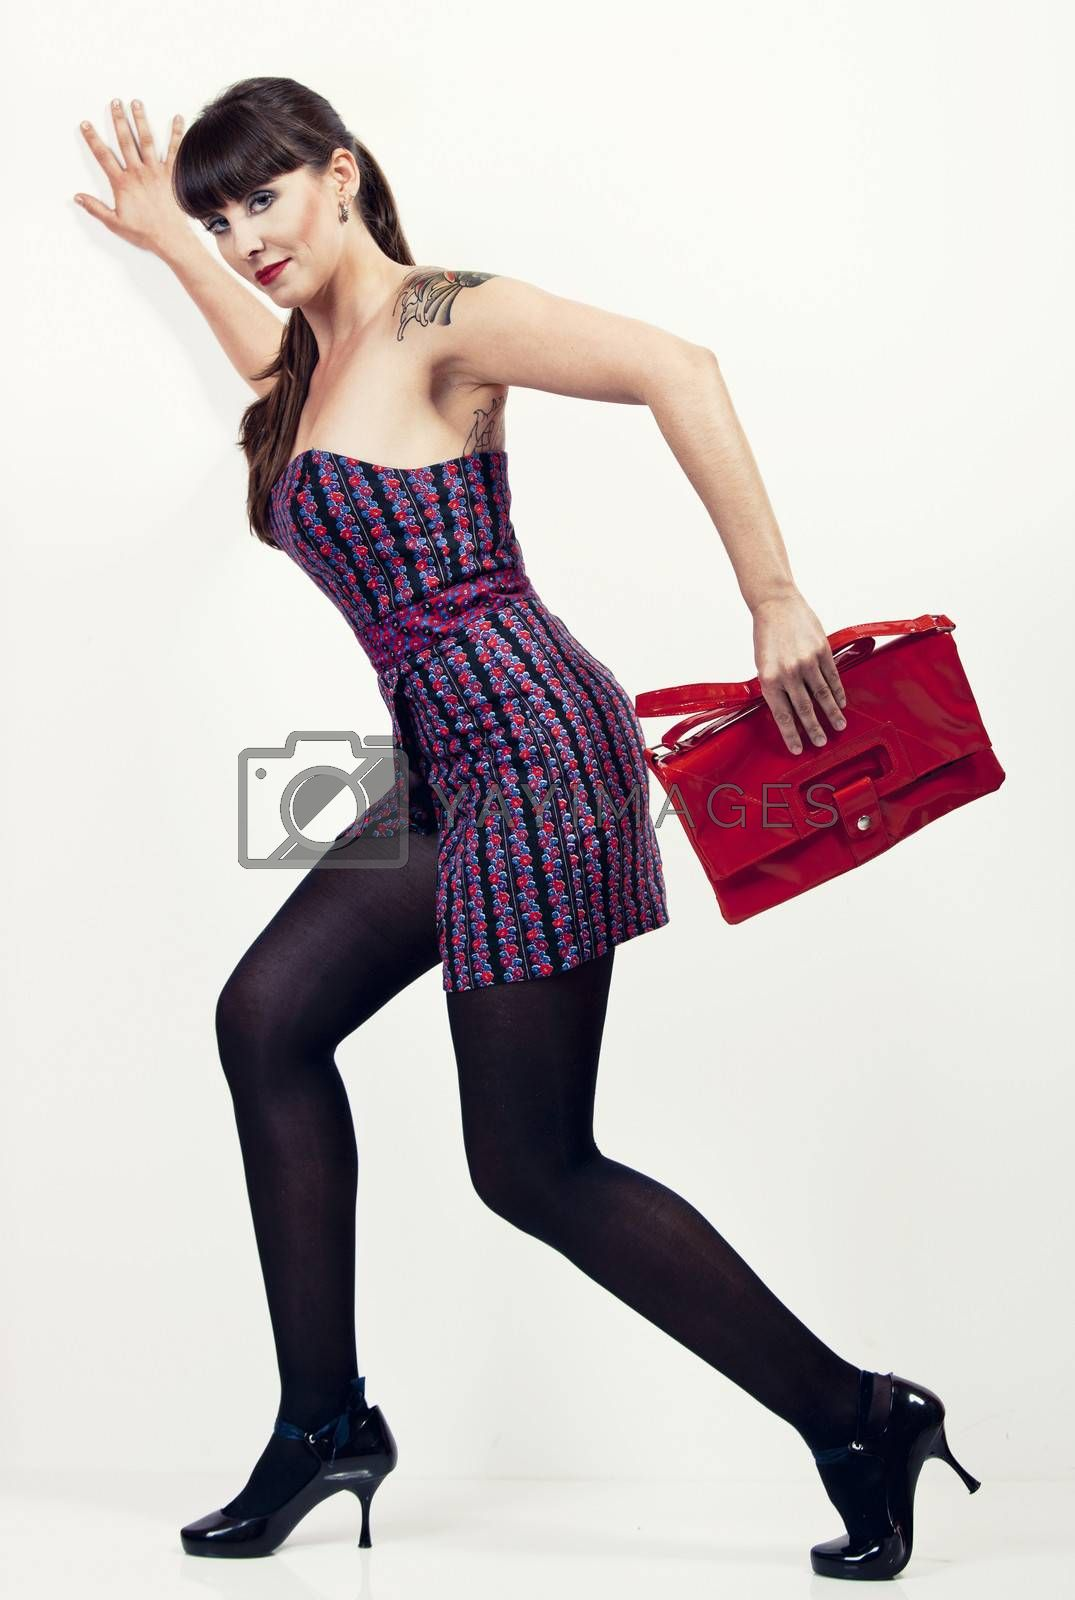 Portrait of a beautiful woman with a vintage look posing with a handbag